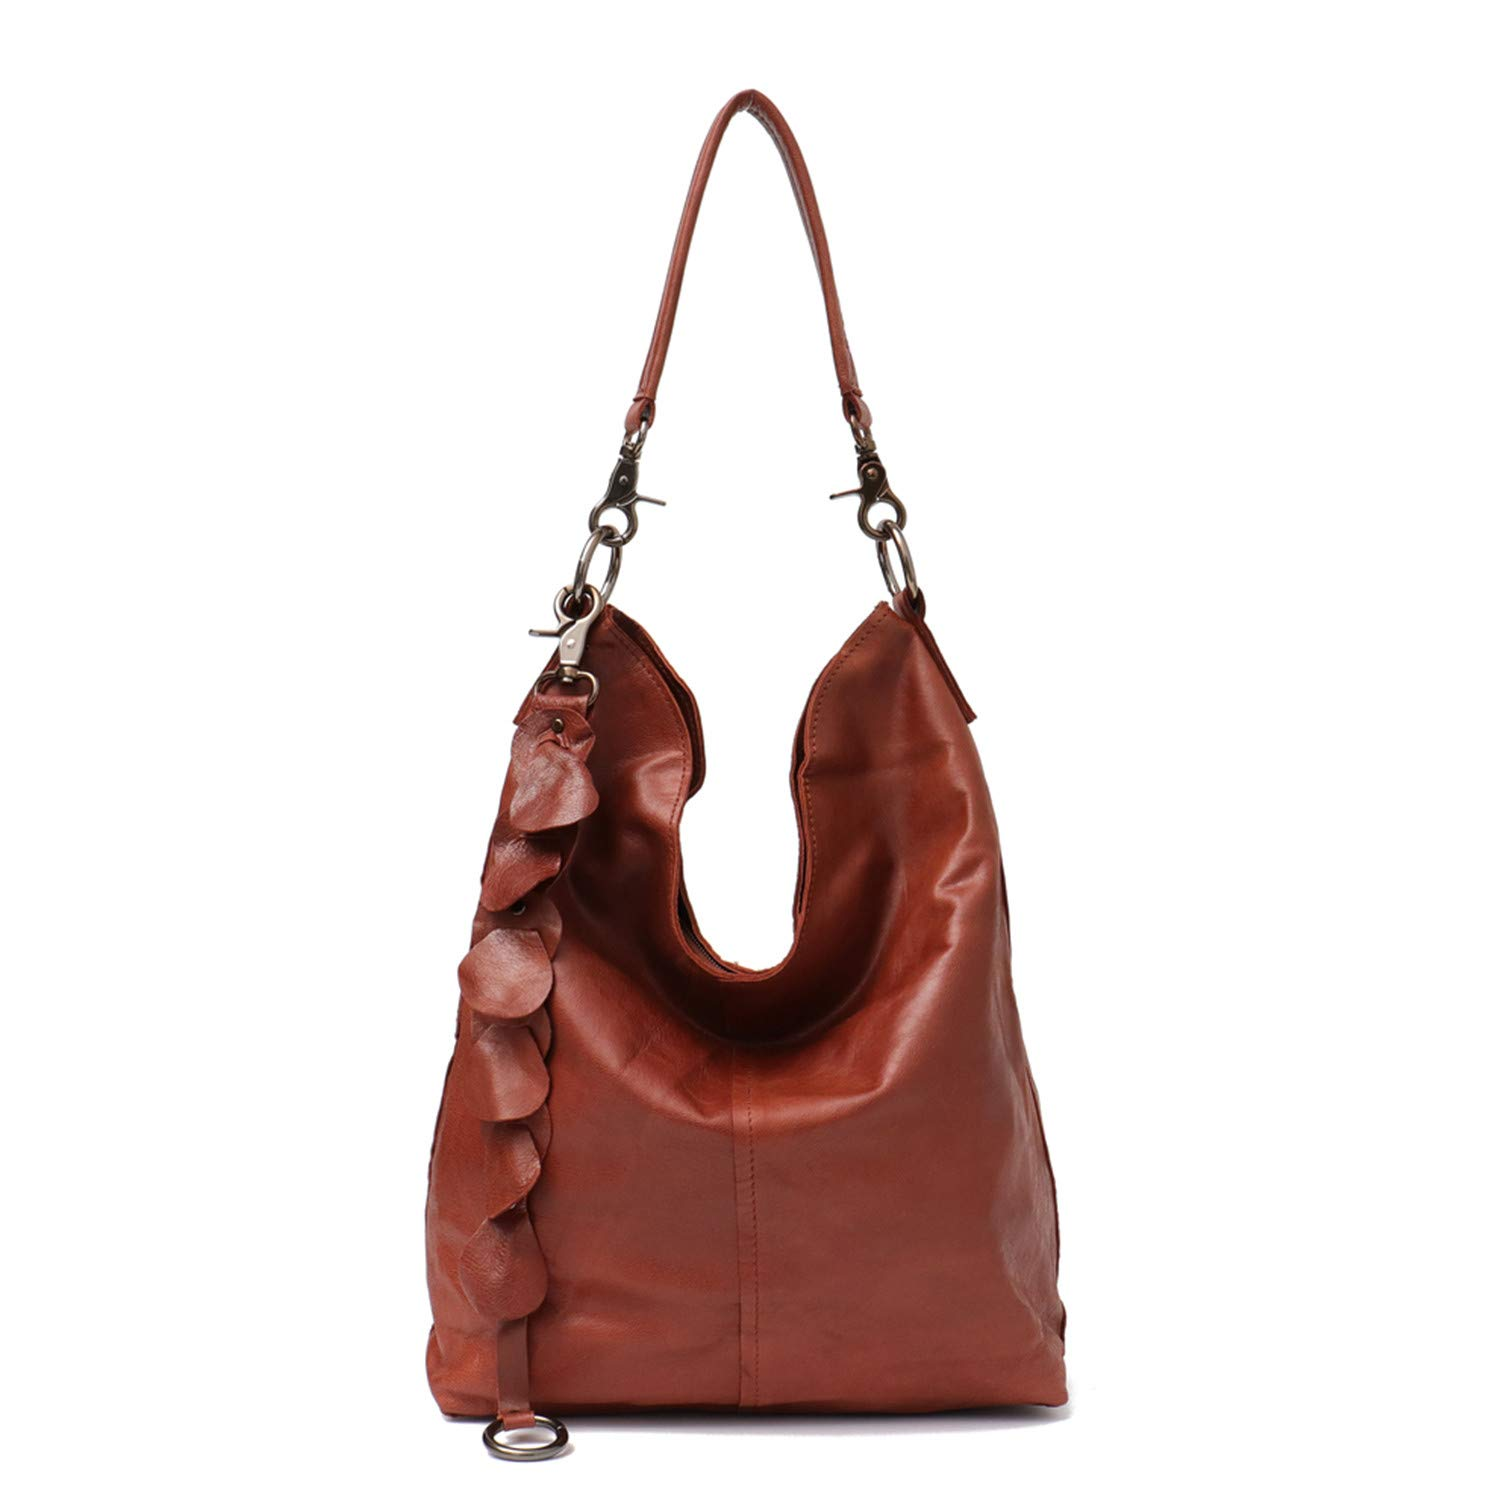 Big Women Handbags Genuine Leather Shoulder Bags Ladies Fashion TLarge Cross Body Bag Soft Real Leather Bags